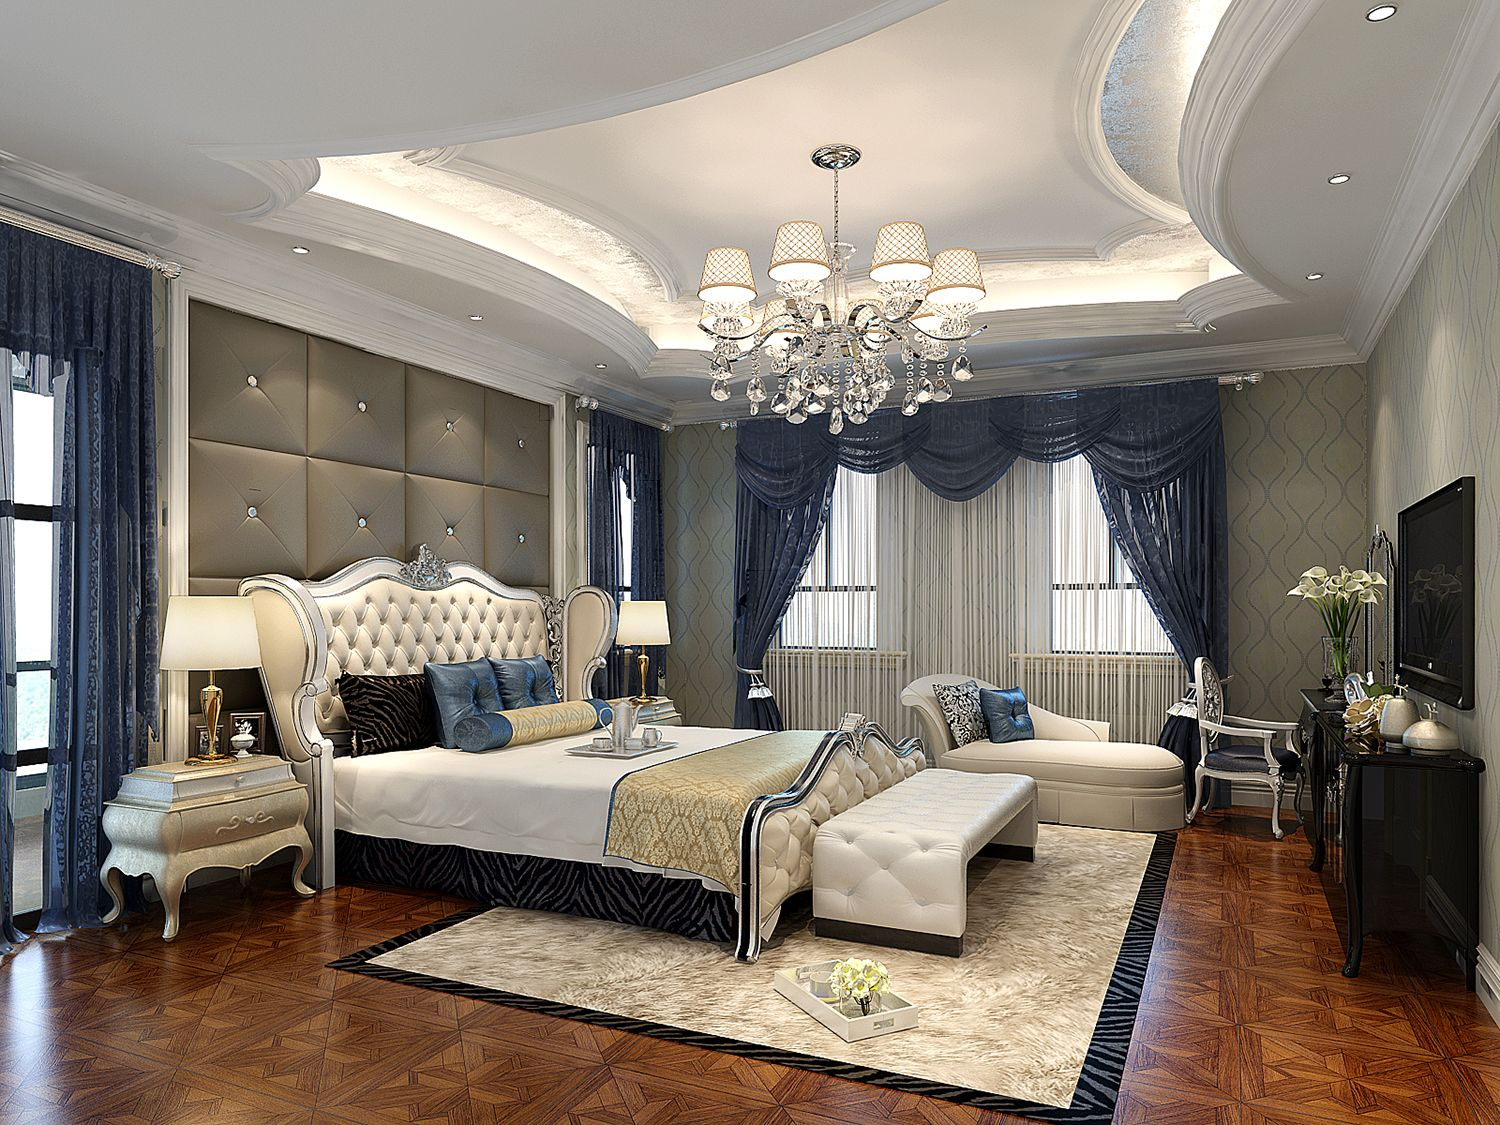 Classical and Decent httpwwwthinkinteriordesignacademycom Classical and Decent